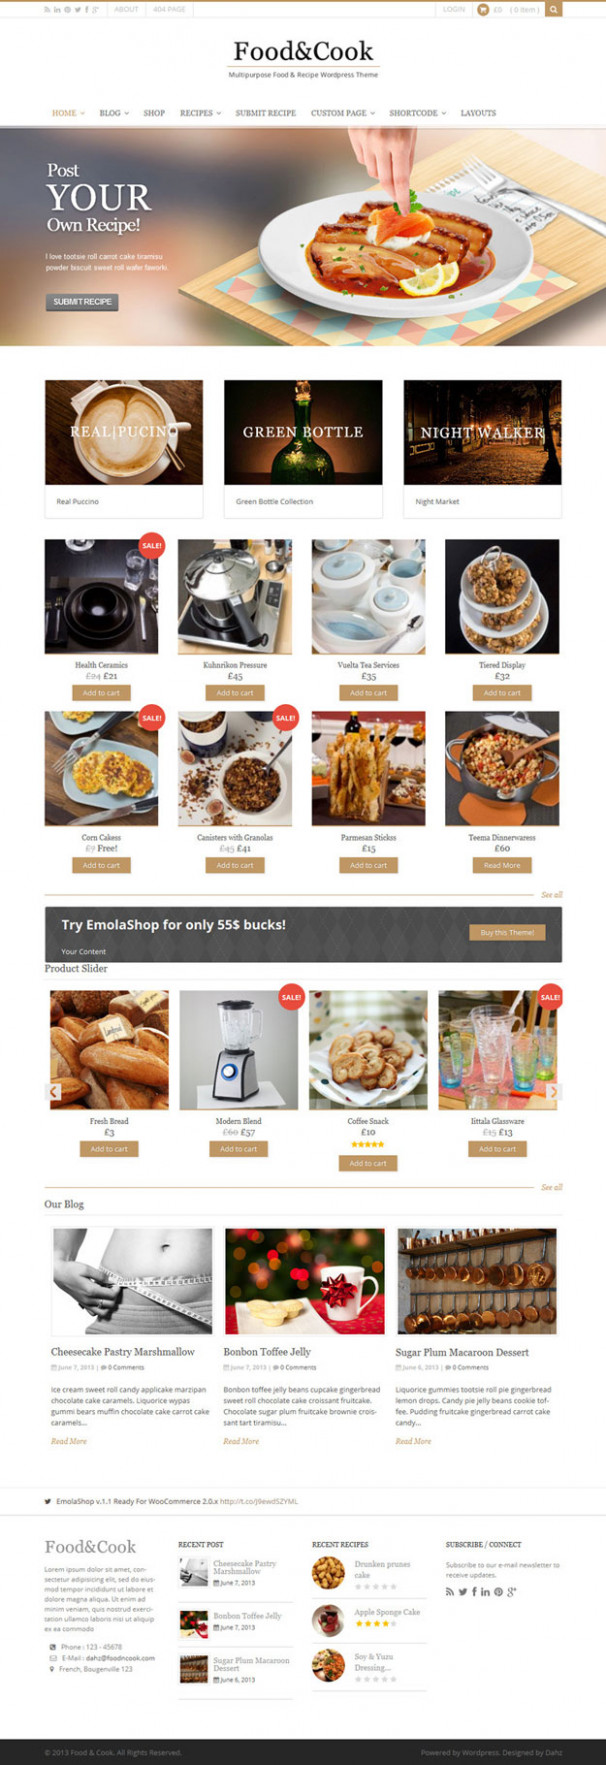 13 Best Food WordPress Themes for Blogs & eStores 13 - food recipes wordpress theme